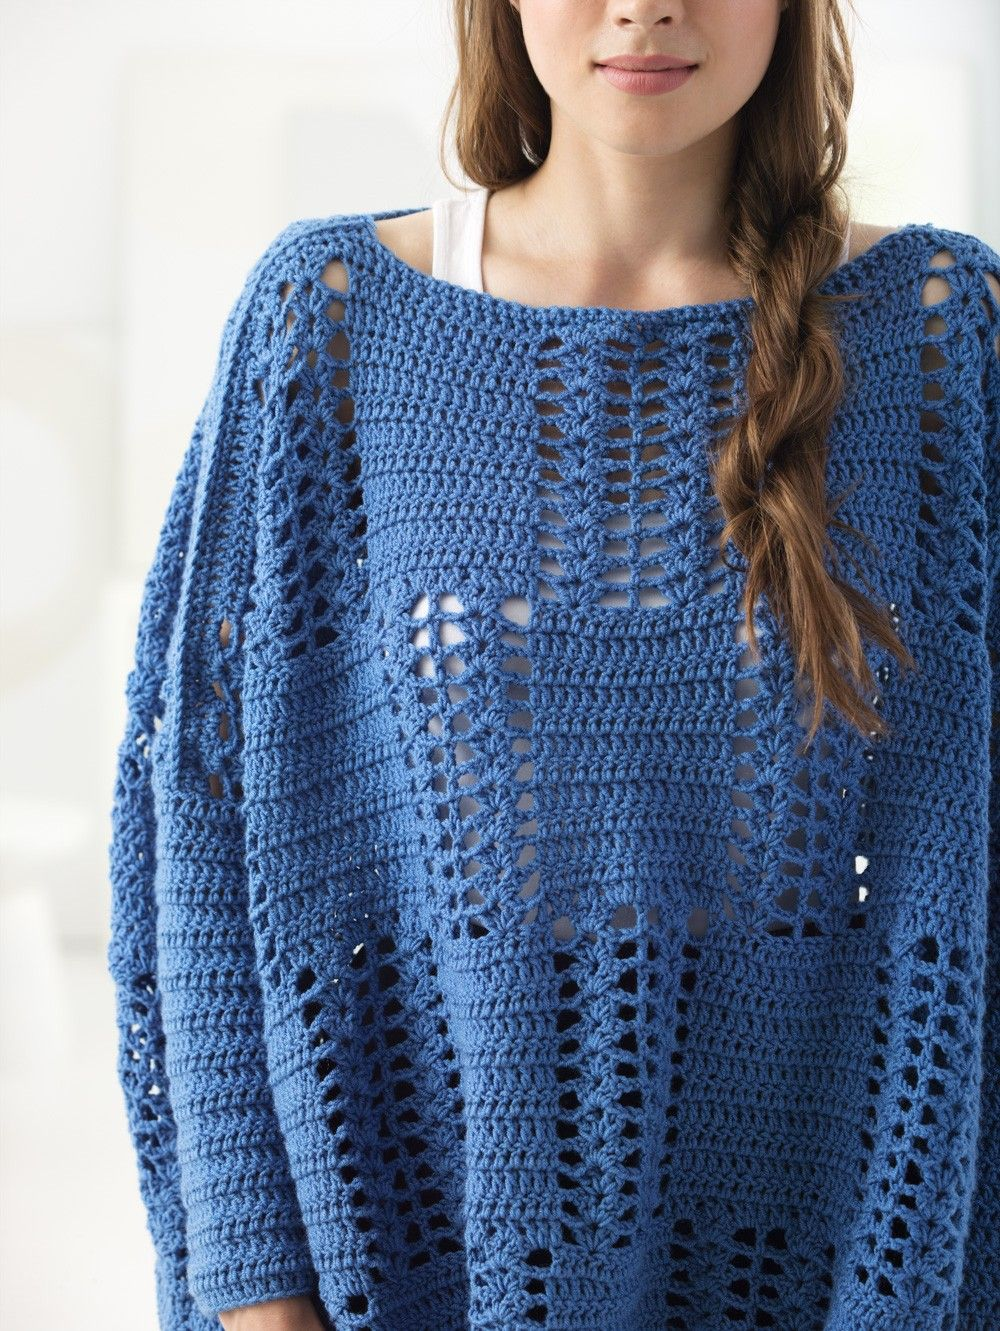 Gulf Coast Pullover (Crochet) | Lion Brand Yarns | Pinterest ...